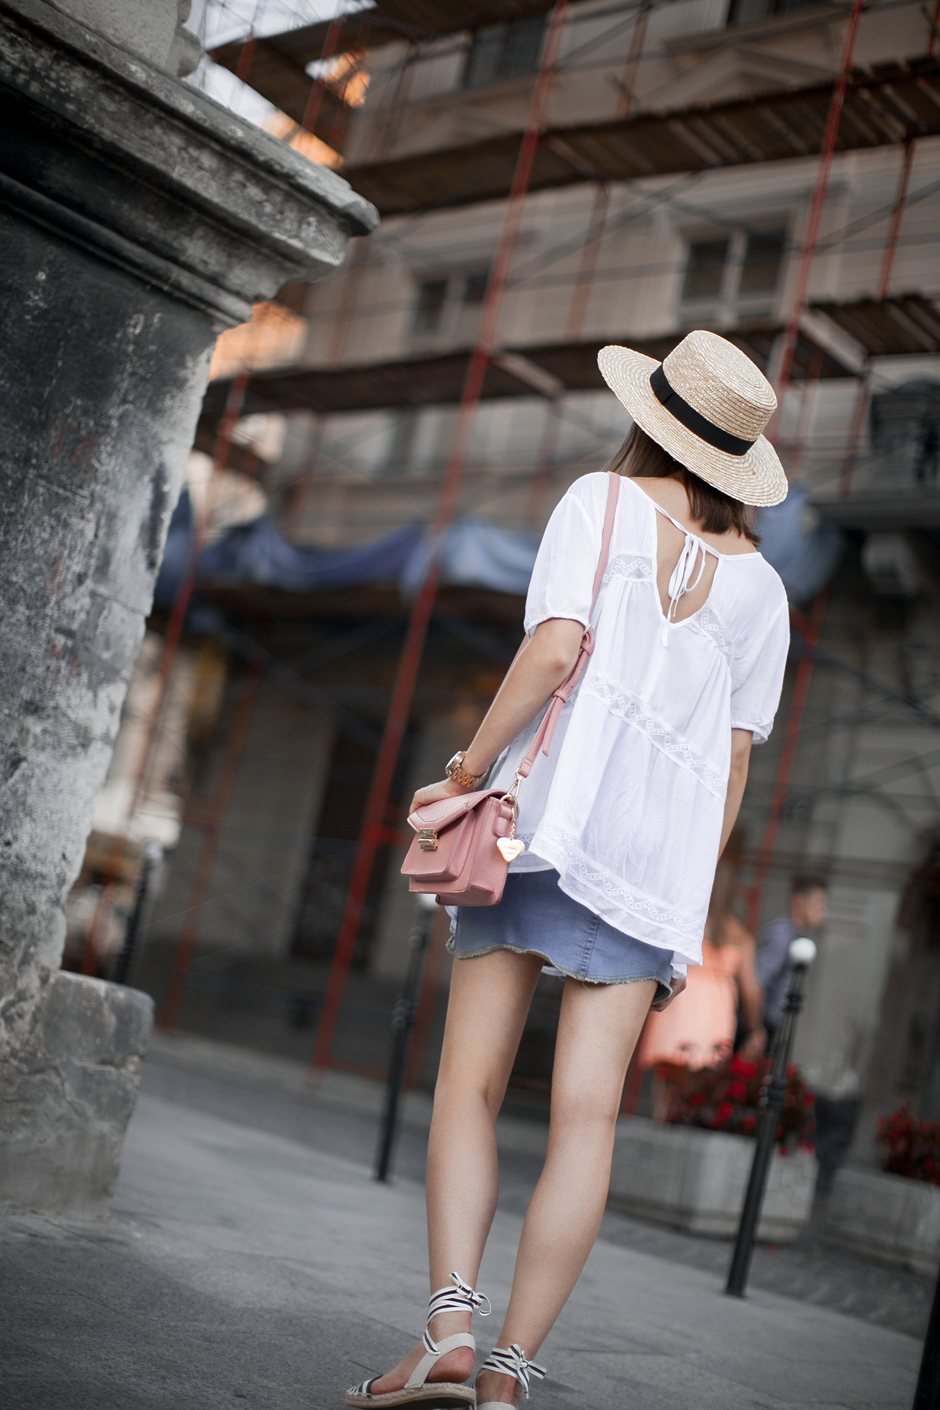 denim-skirt-espadrilles-outfit-fashion-blog